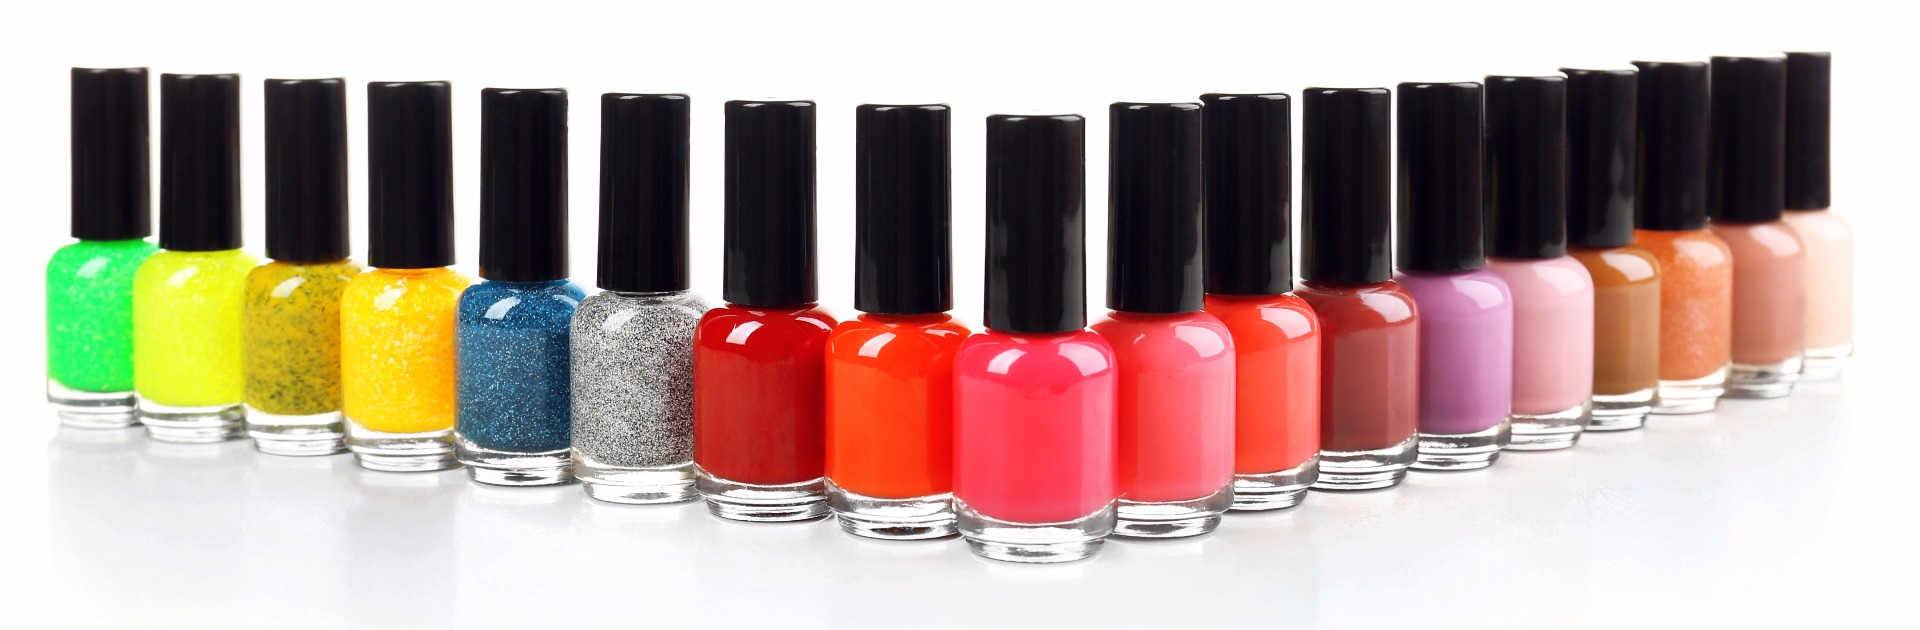 The Dangers of Using Fake Gel Nail Products - Jealous Nails